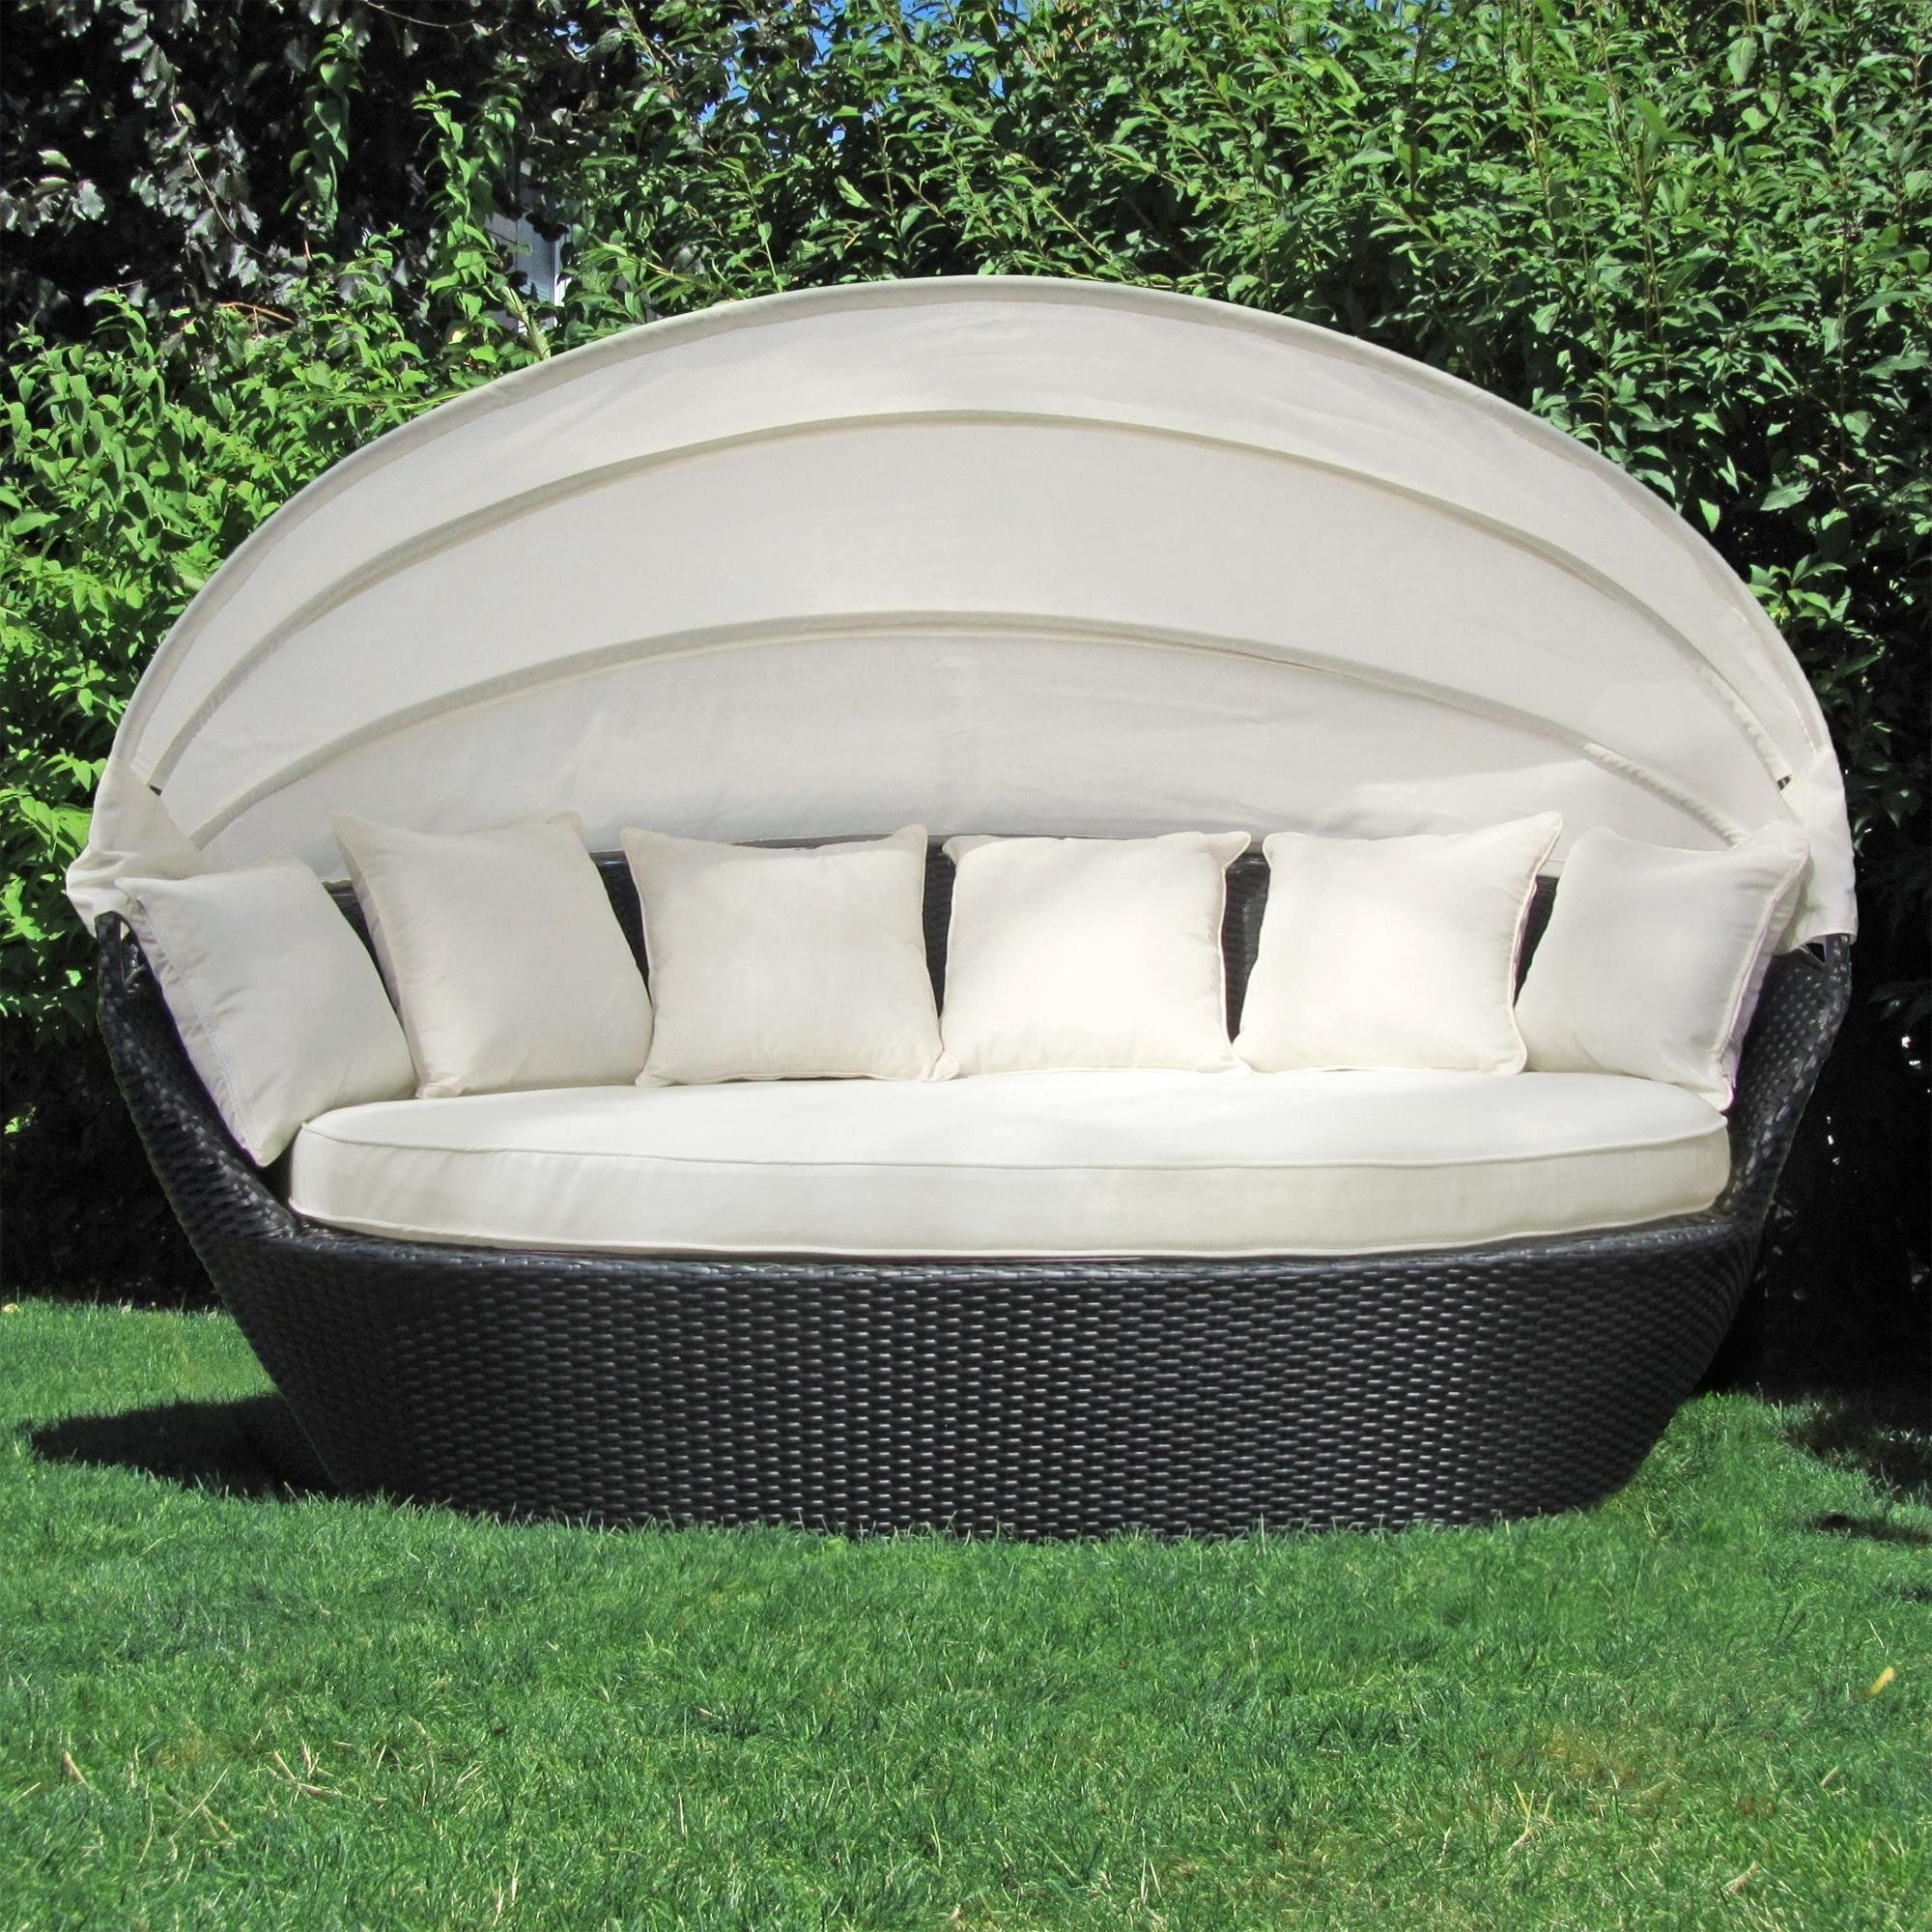 Chill Lounge Möbel Sonneninsel Polyrattan Garten Lounge Chill Out Sofa Mit